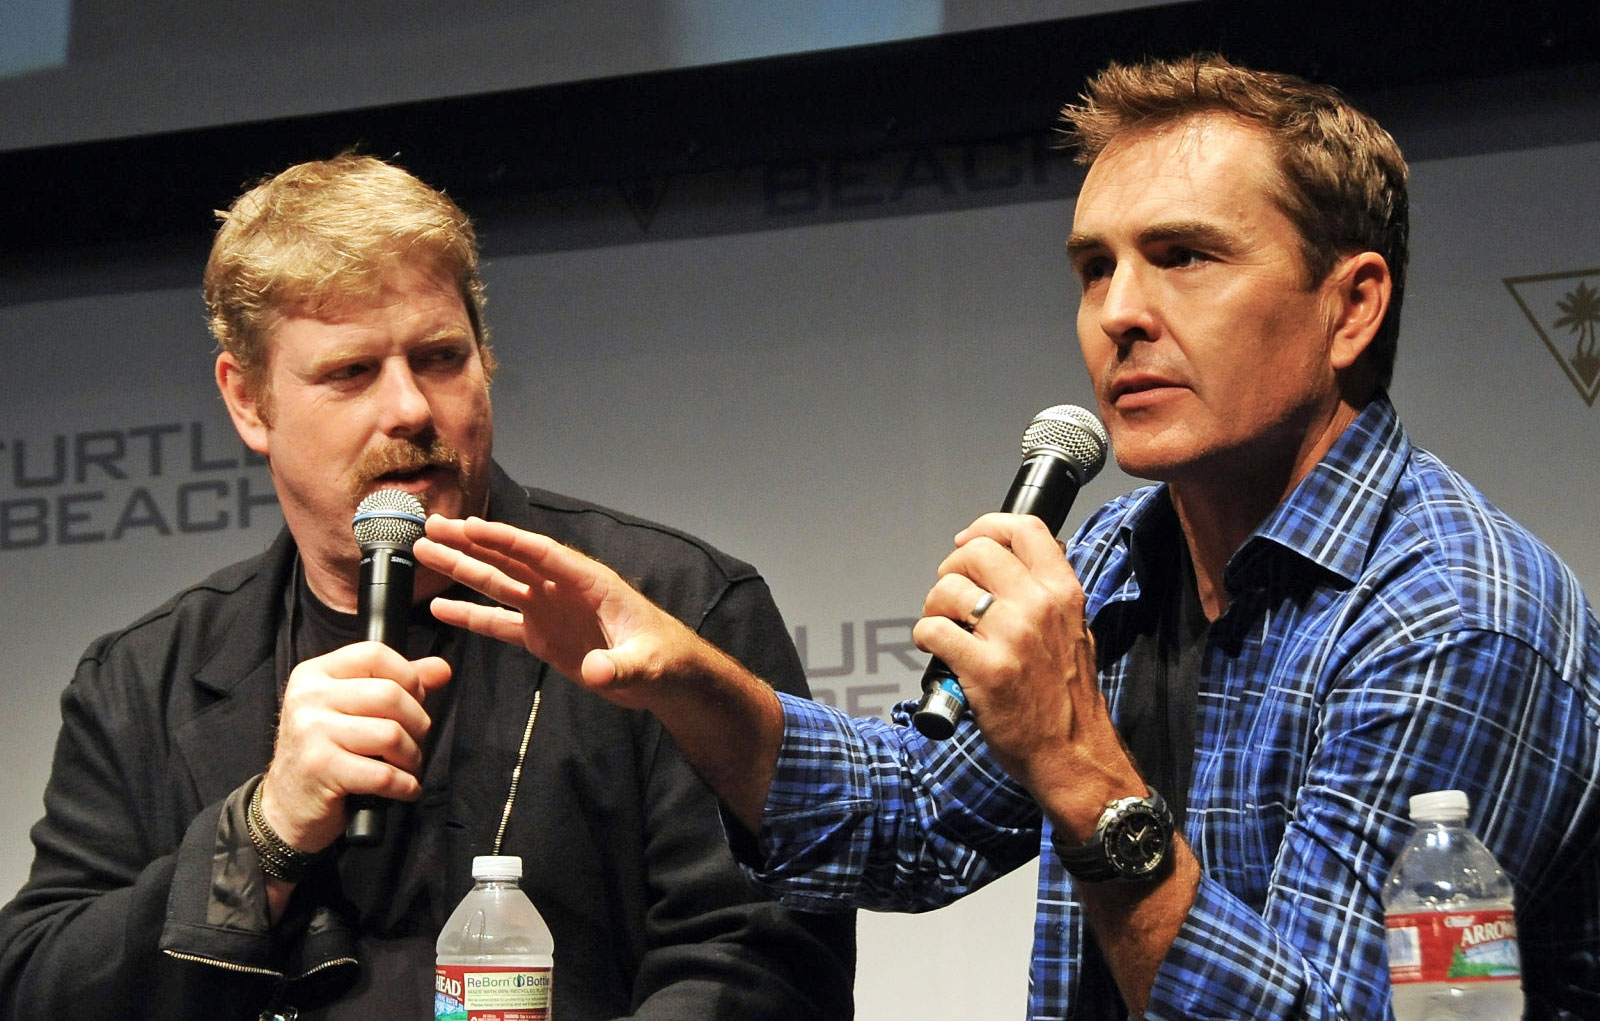 Video game voice actors will strike after rejecting pay ...